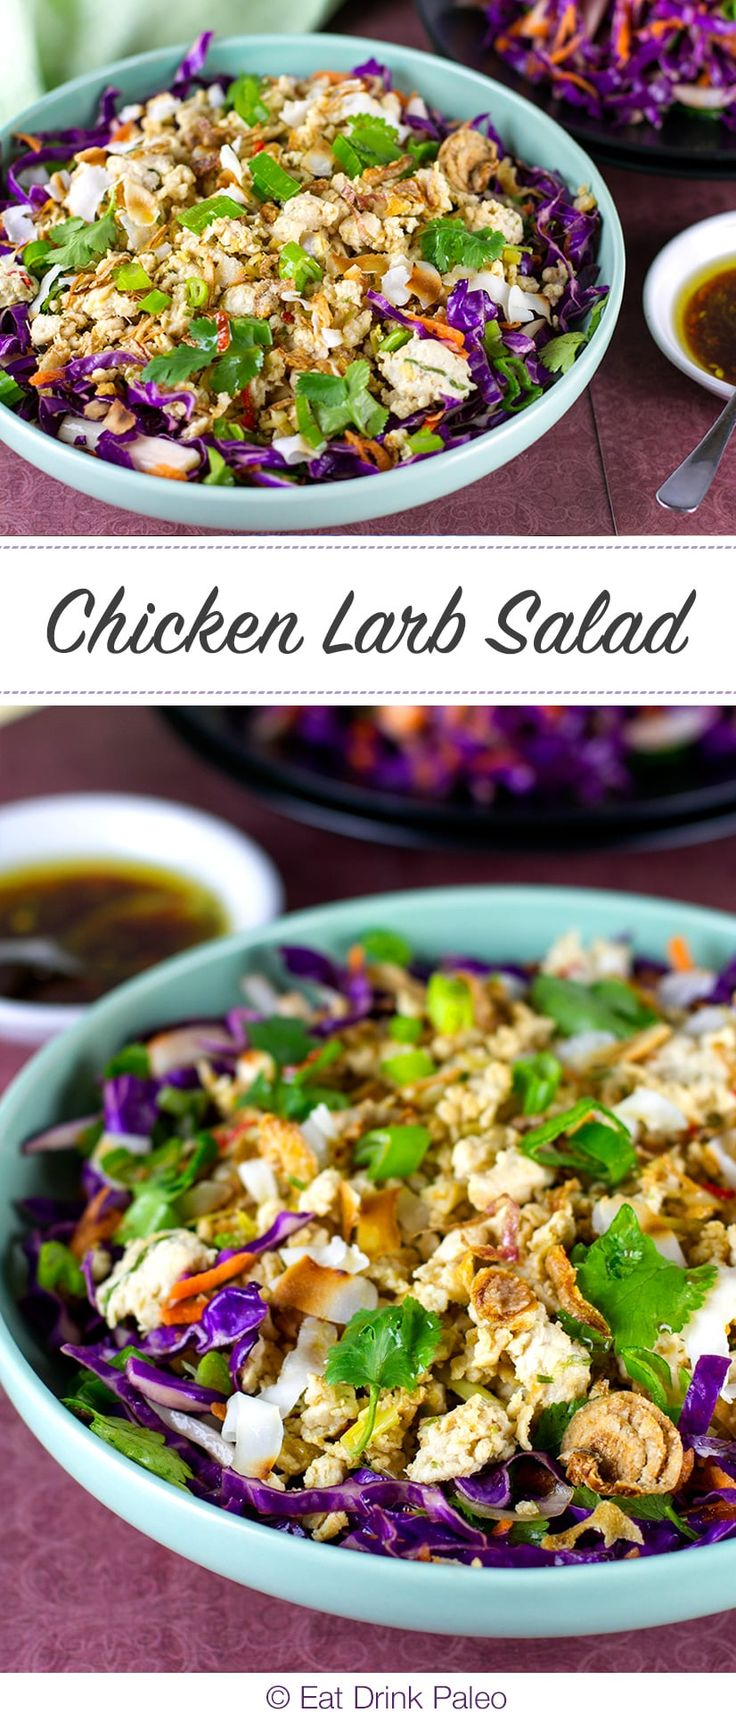 This chicken larb salad is like Pop Rocks Candy - layers of textures and amazing punchy flavours unravel in your mouth with each bite.